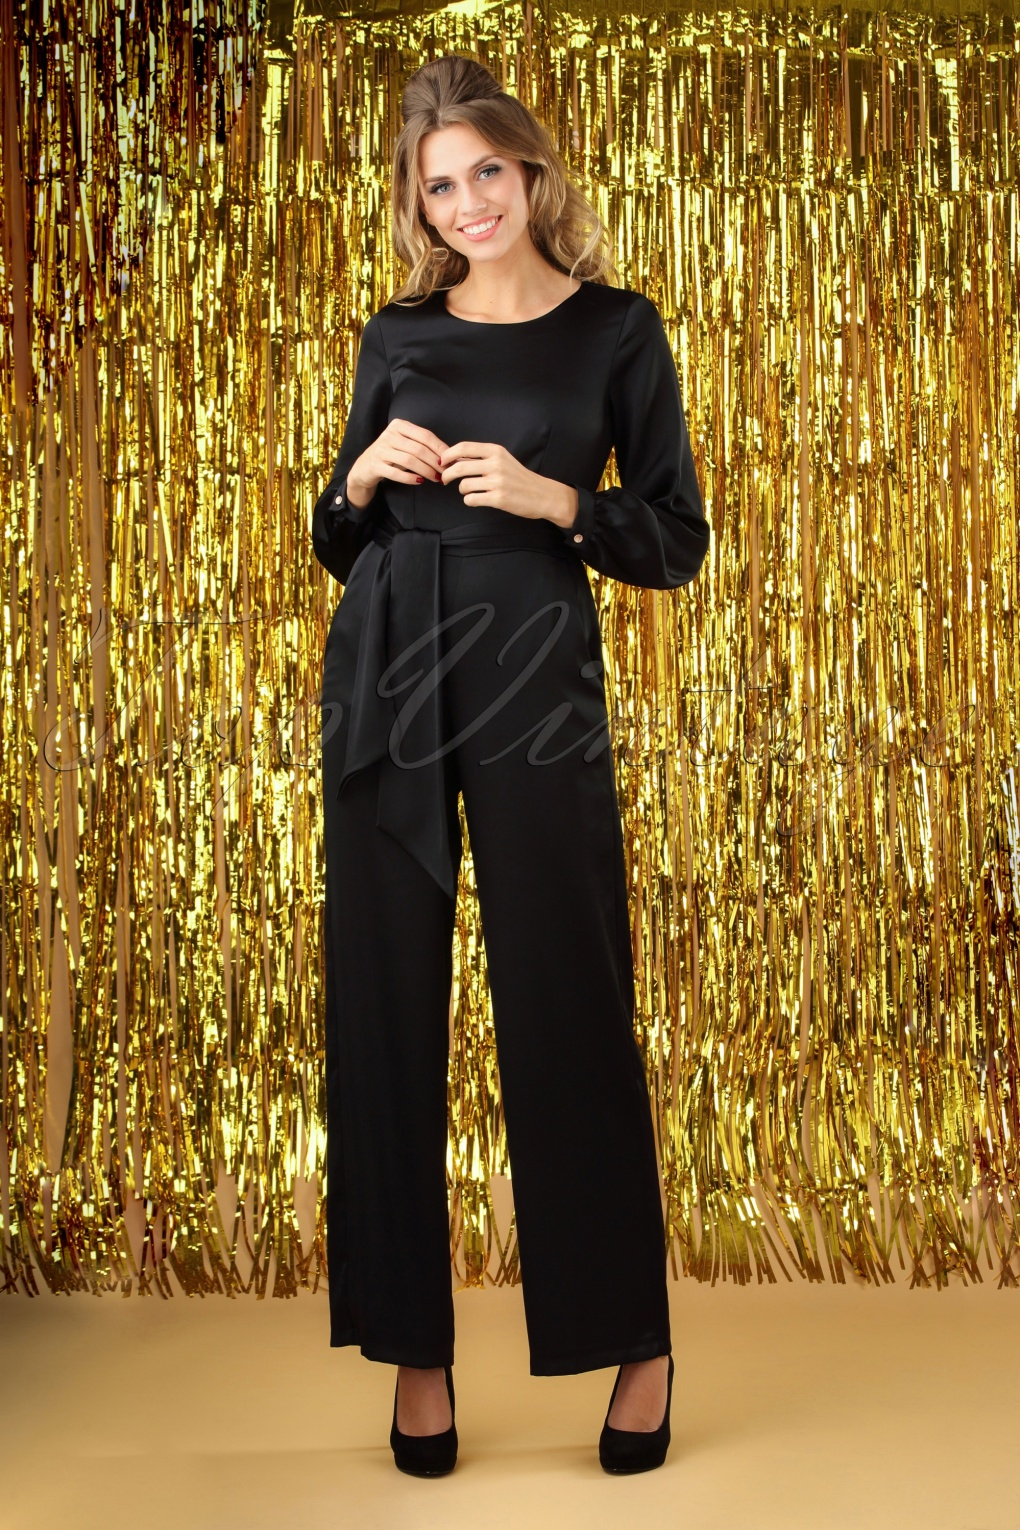 Vintage High Waisted Trousers, Sailor Pants, Jeans 70s Satin Puff Sleeve Jumpsuit in Black £45.61 AT vintagedancer.com